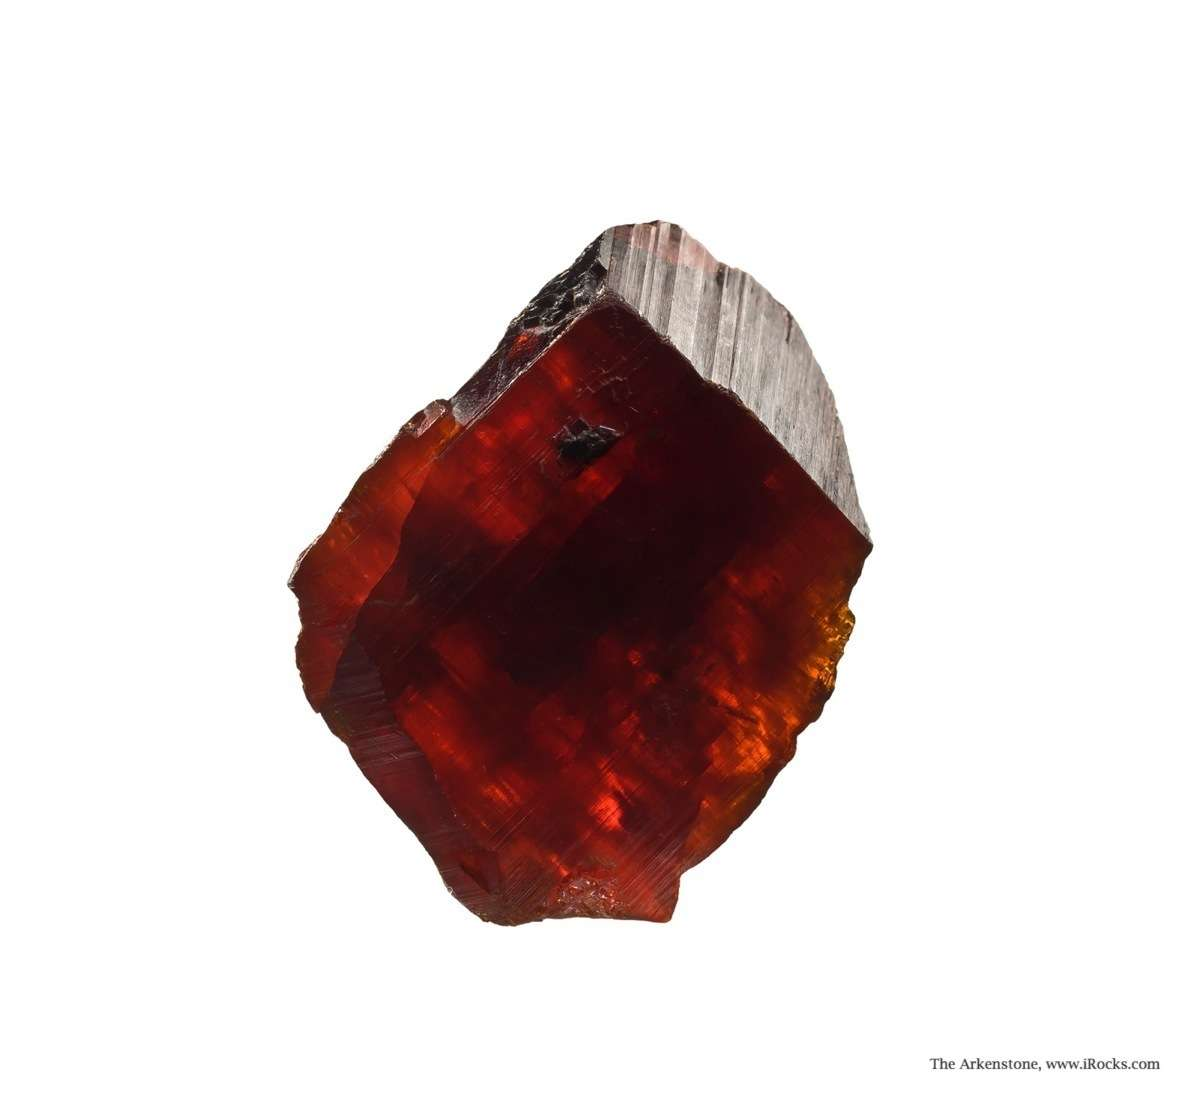 These remarkable crystals considered seen best species started trickle